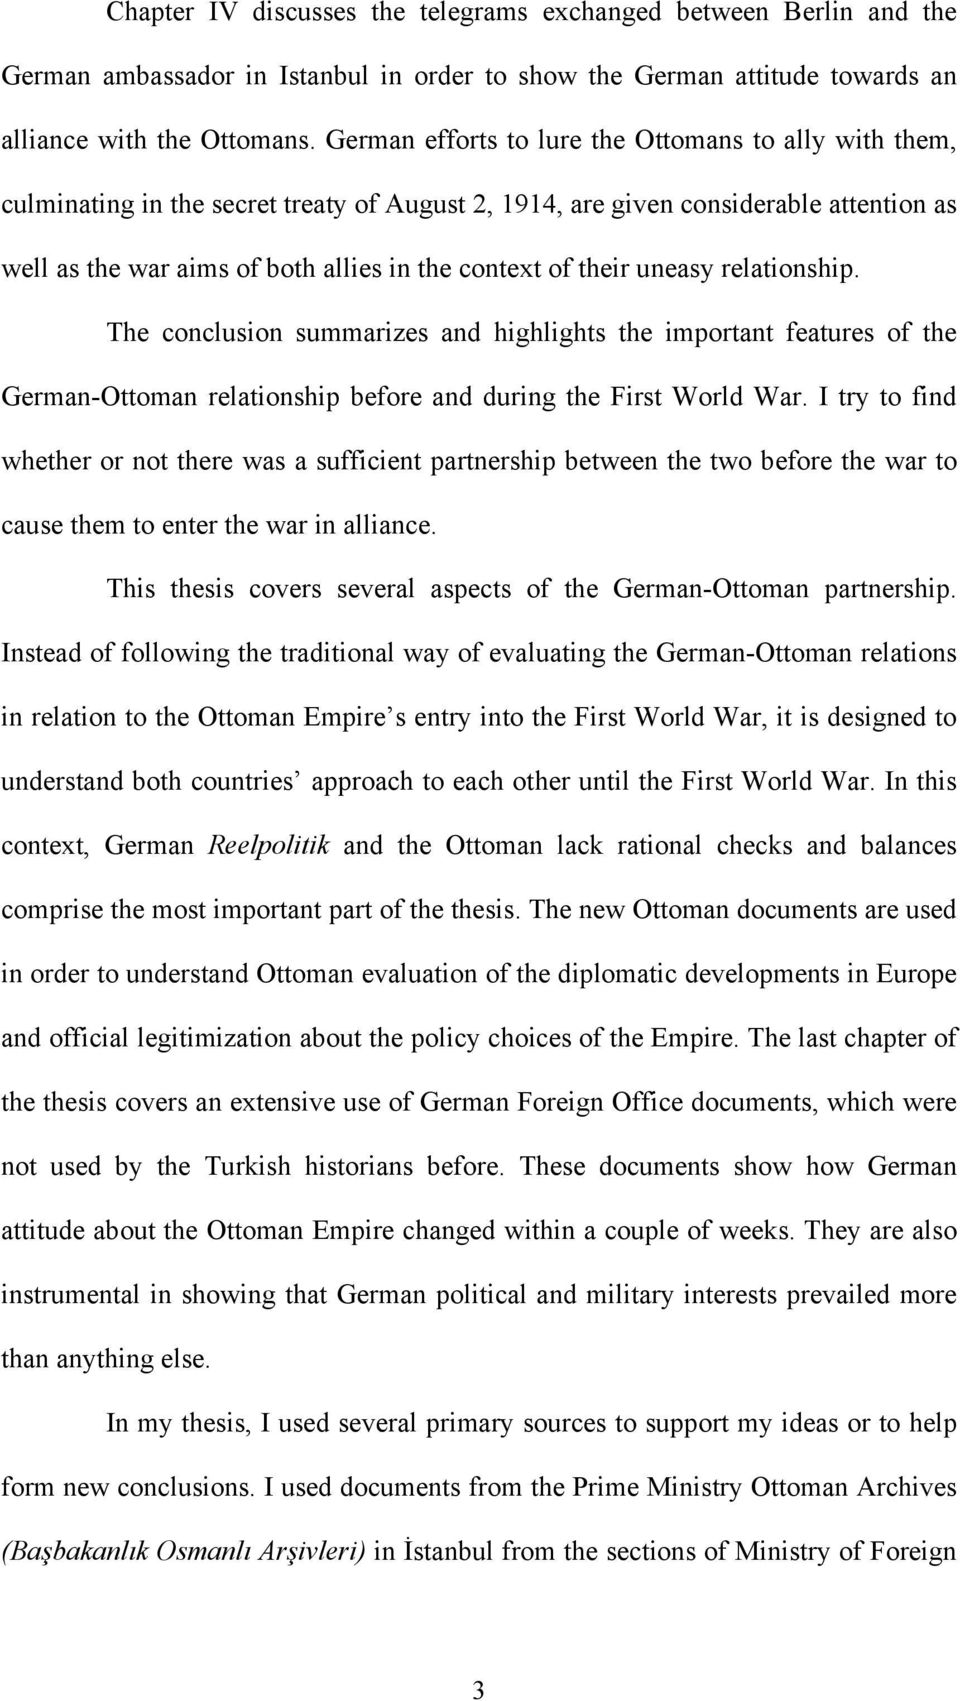 their uneasy relationship. The conclusion summarizes and highlights the important features of the German-Ottoman relationship before and during the First World War.